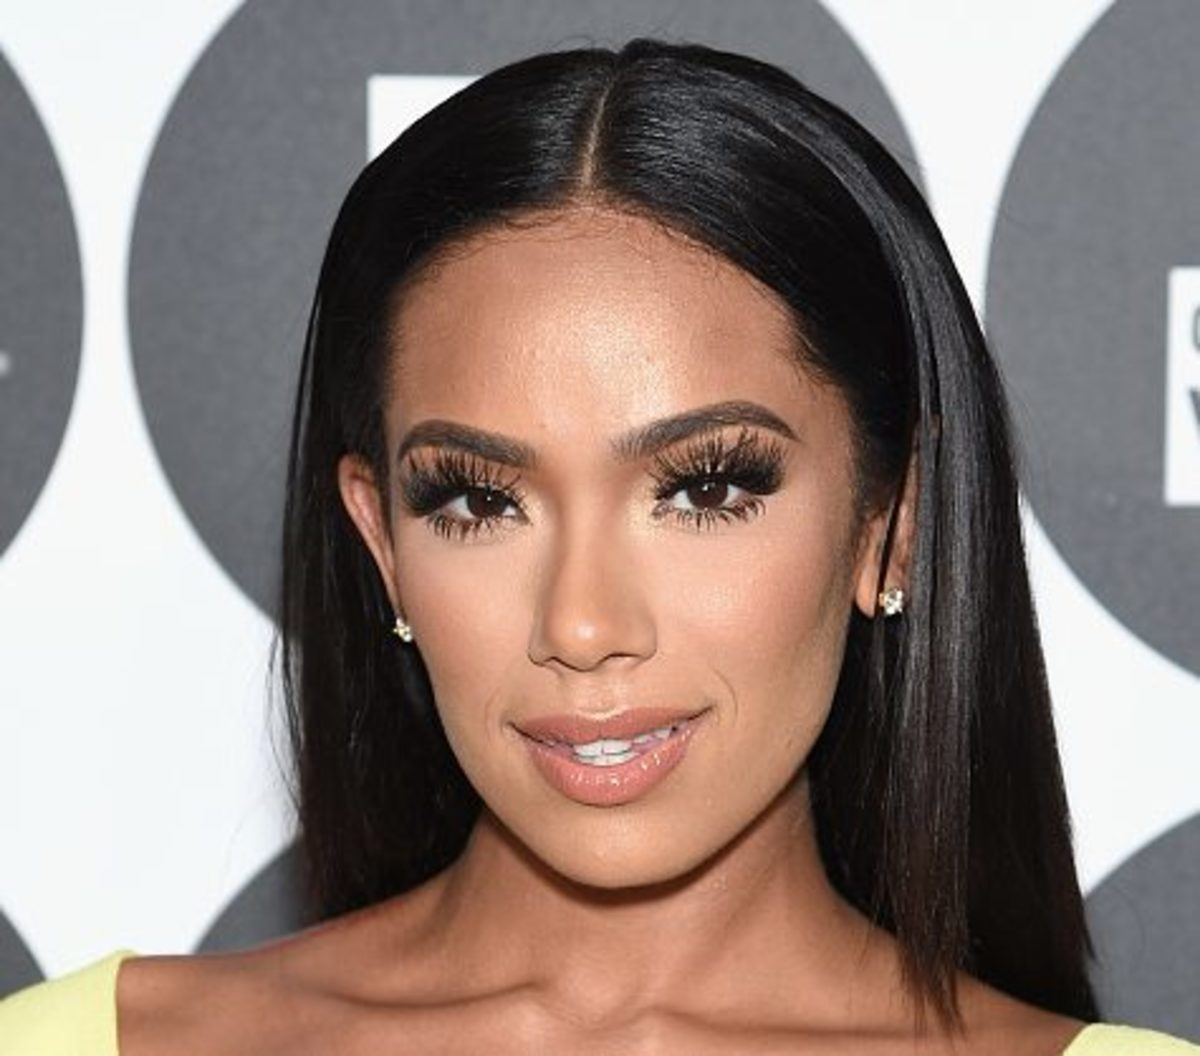 Erica Mena Shows Off Her Snatched Body In A Fire Animal Print Outfit – Check Out Her New Photo!